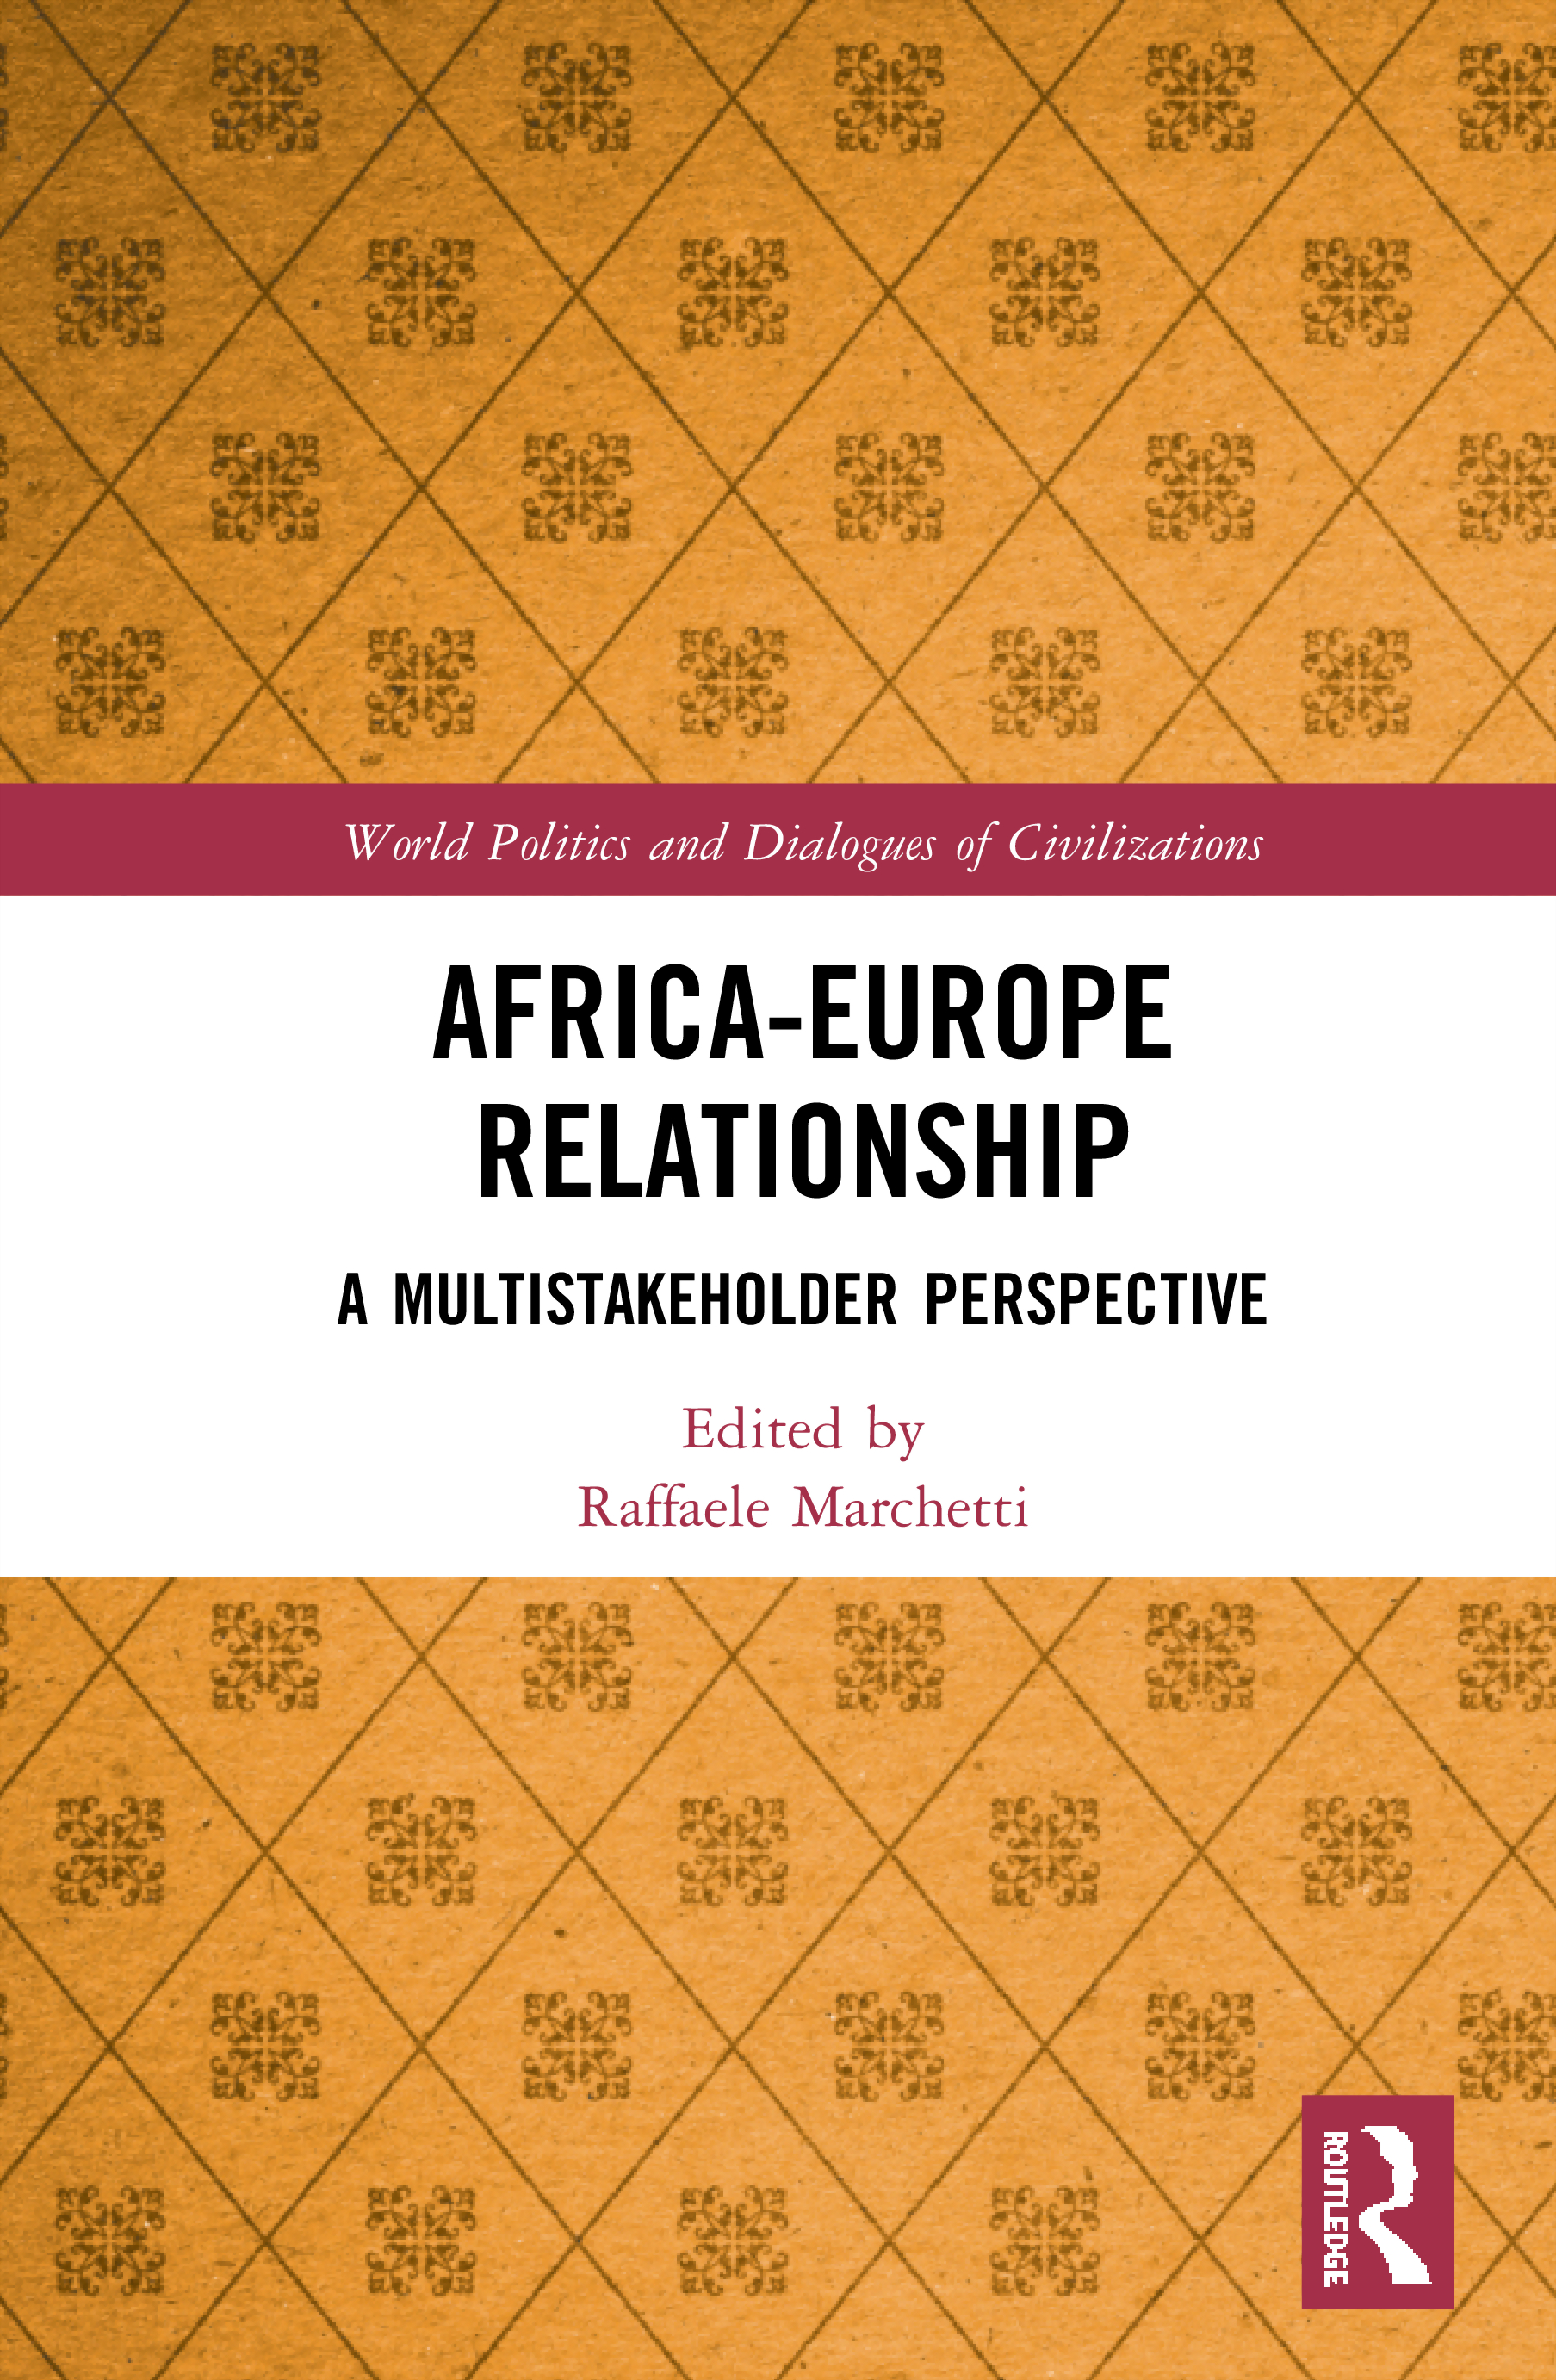 Africa-Europe Relationship: A Multistakeholder Perspective book cover